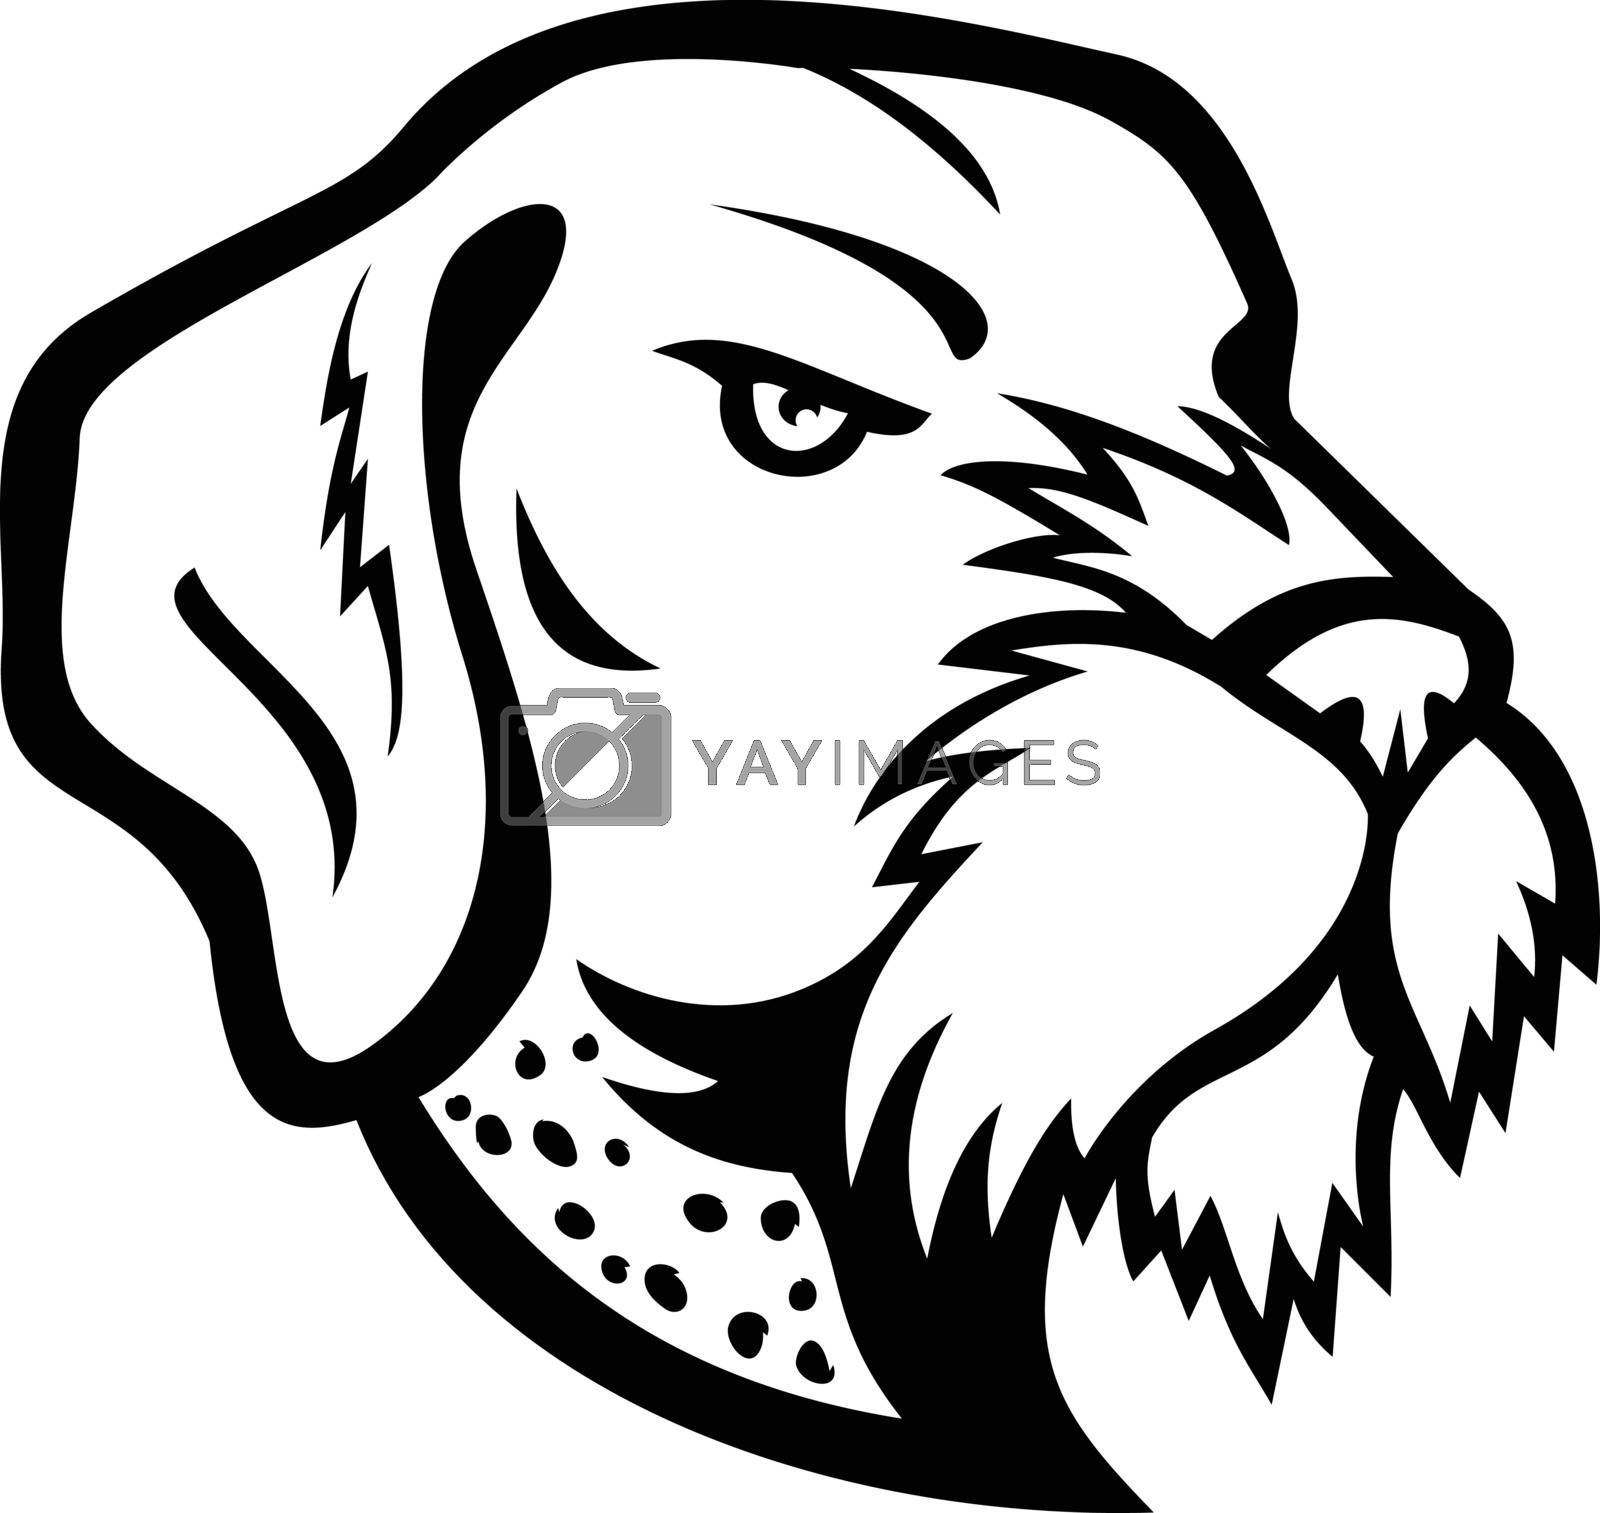 Mascot icon illustration of head of a German Wirehaired Pointer, a medium to large-sized griffon type breed of dog viewed from side on isolated background in retro black and white style.